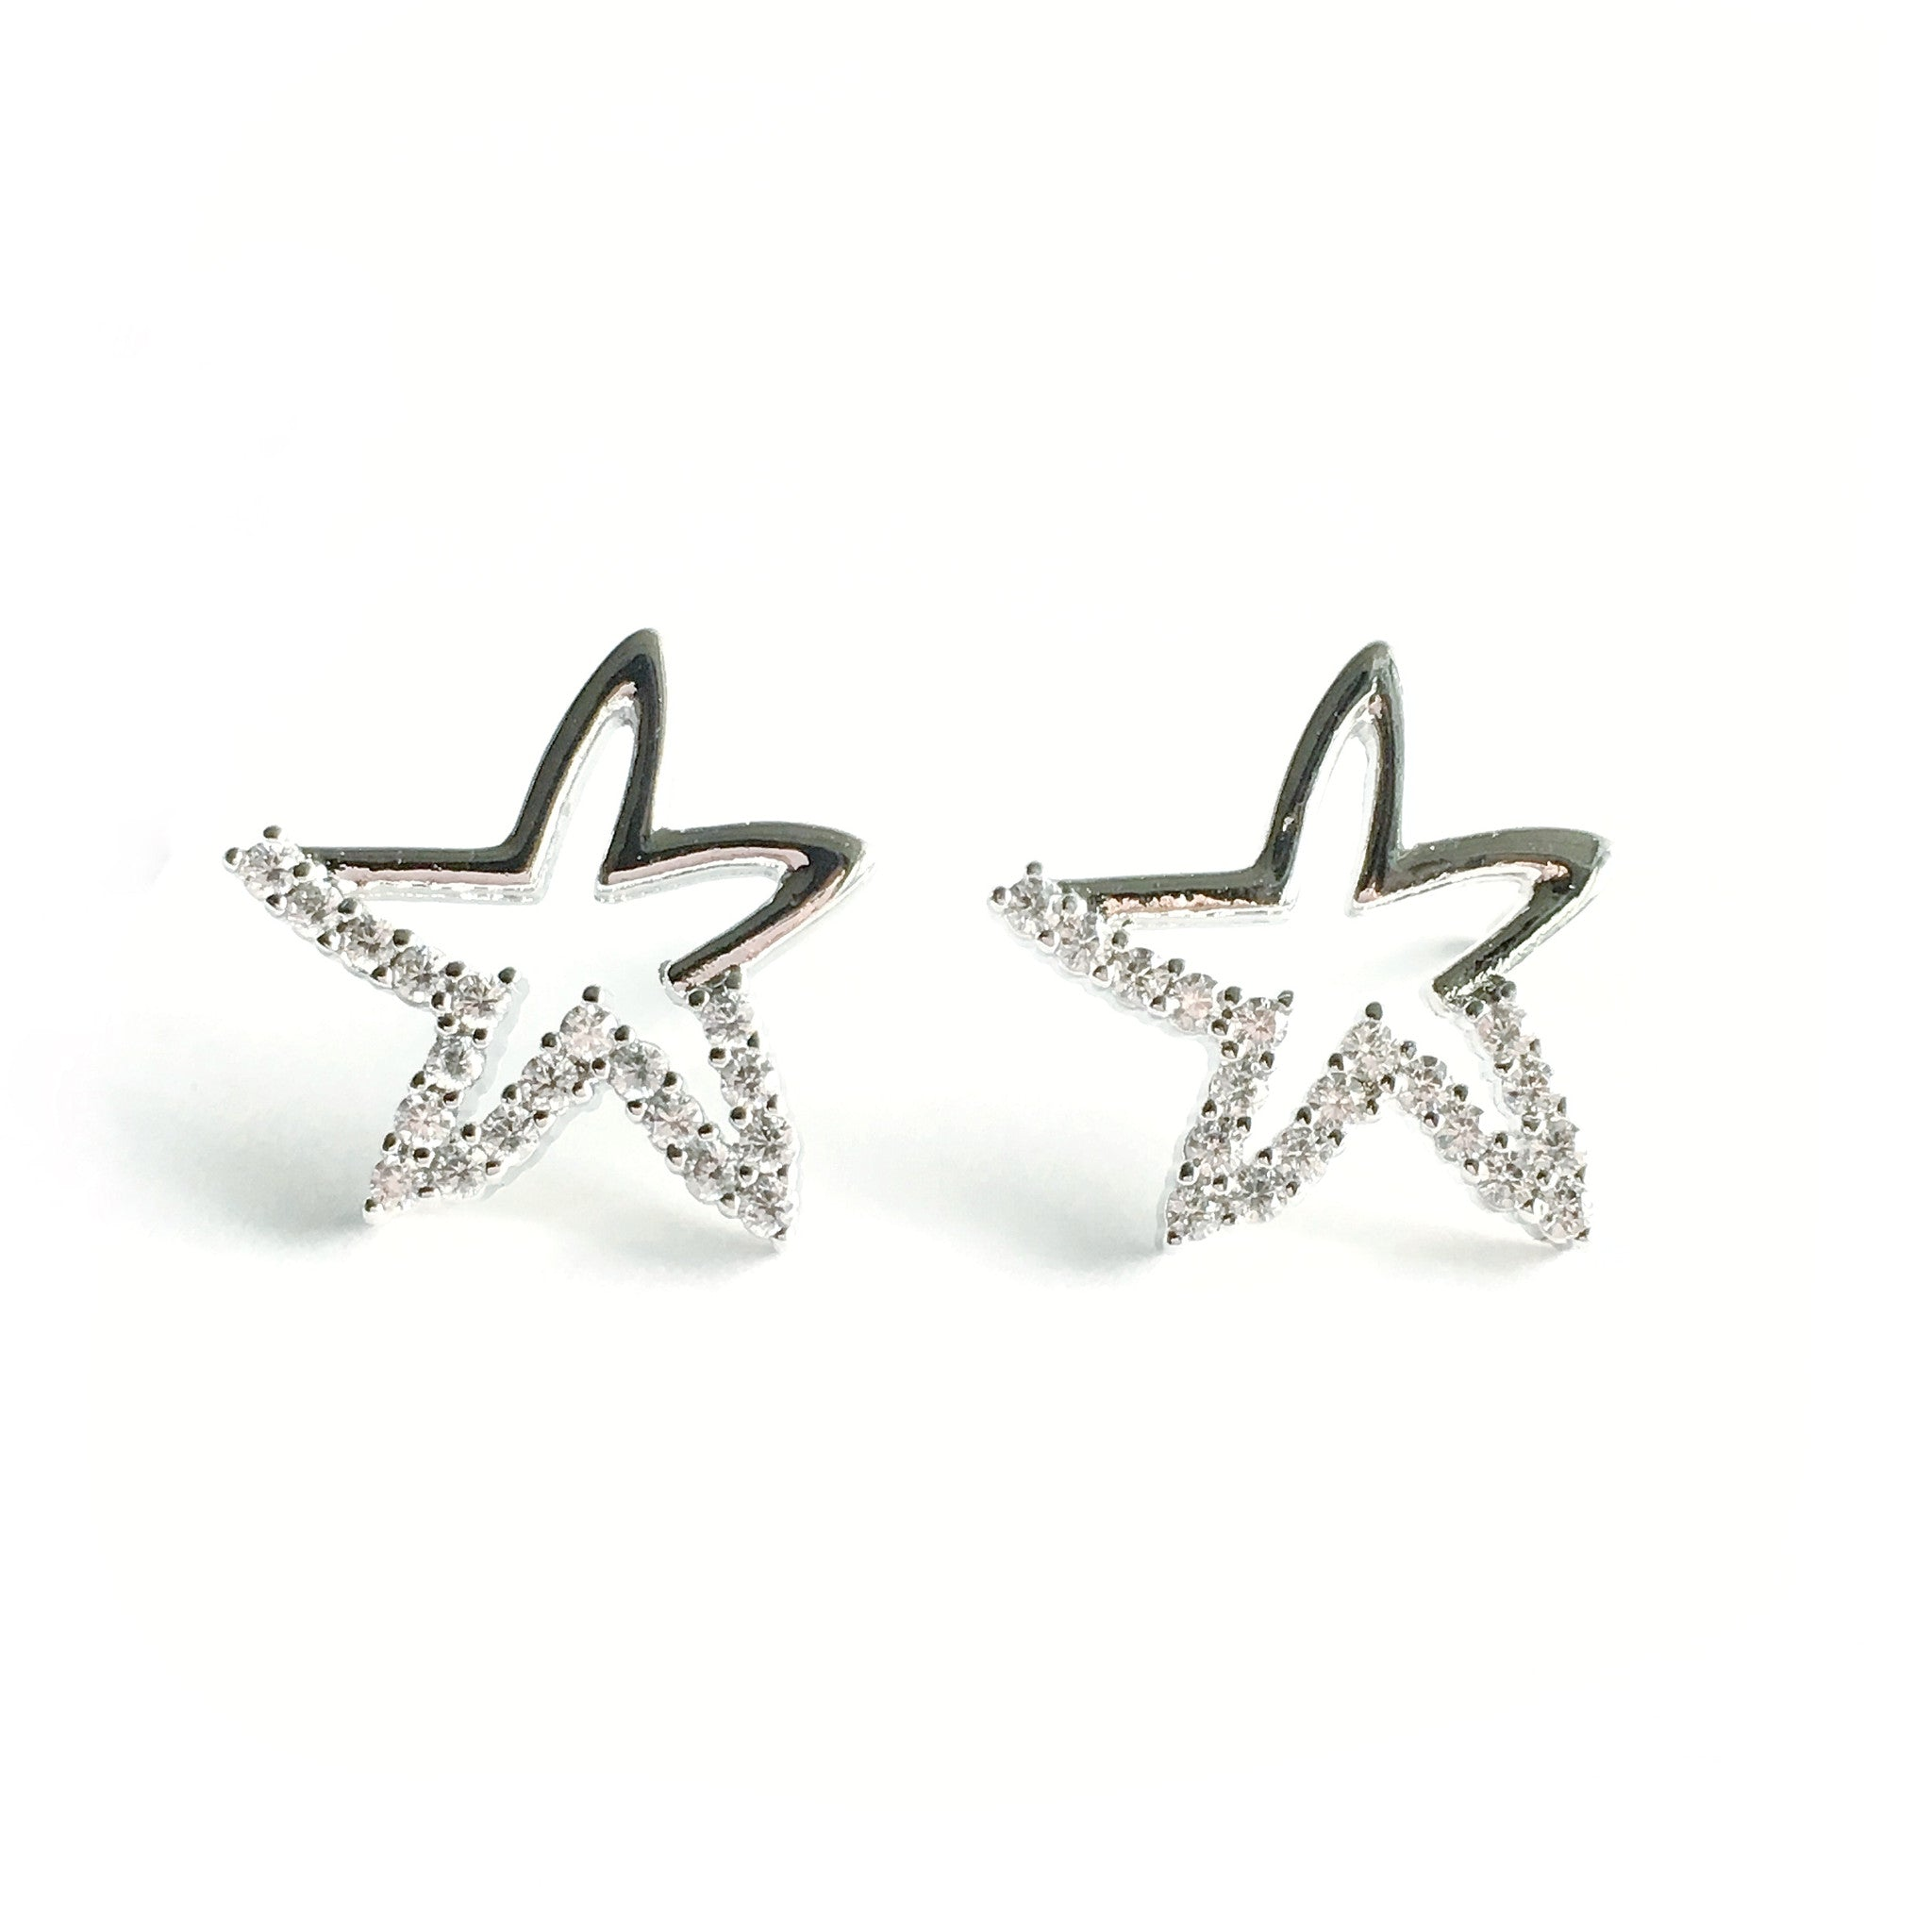 Gemini Star Silver Earrings - Micha Store